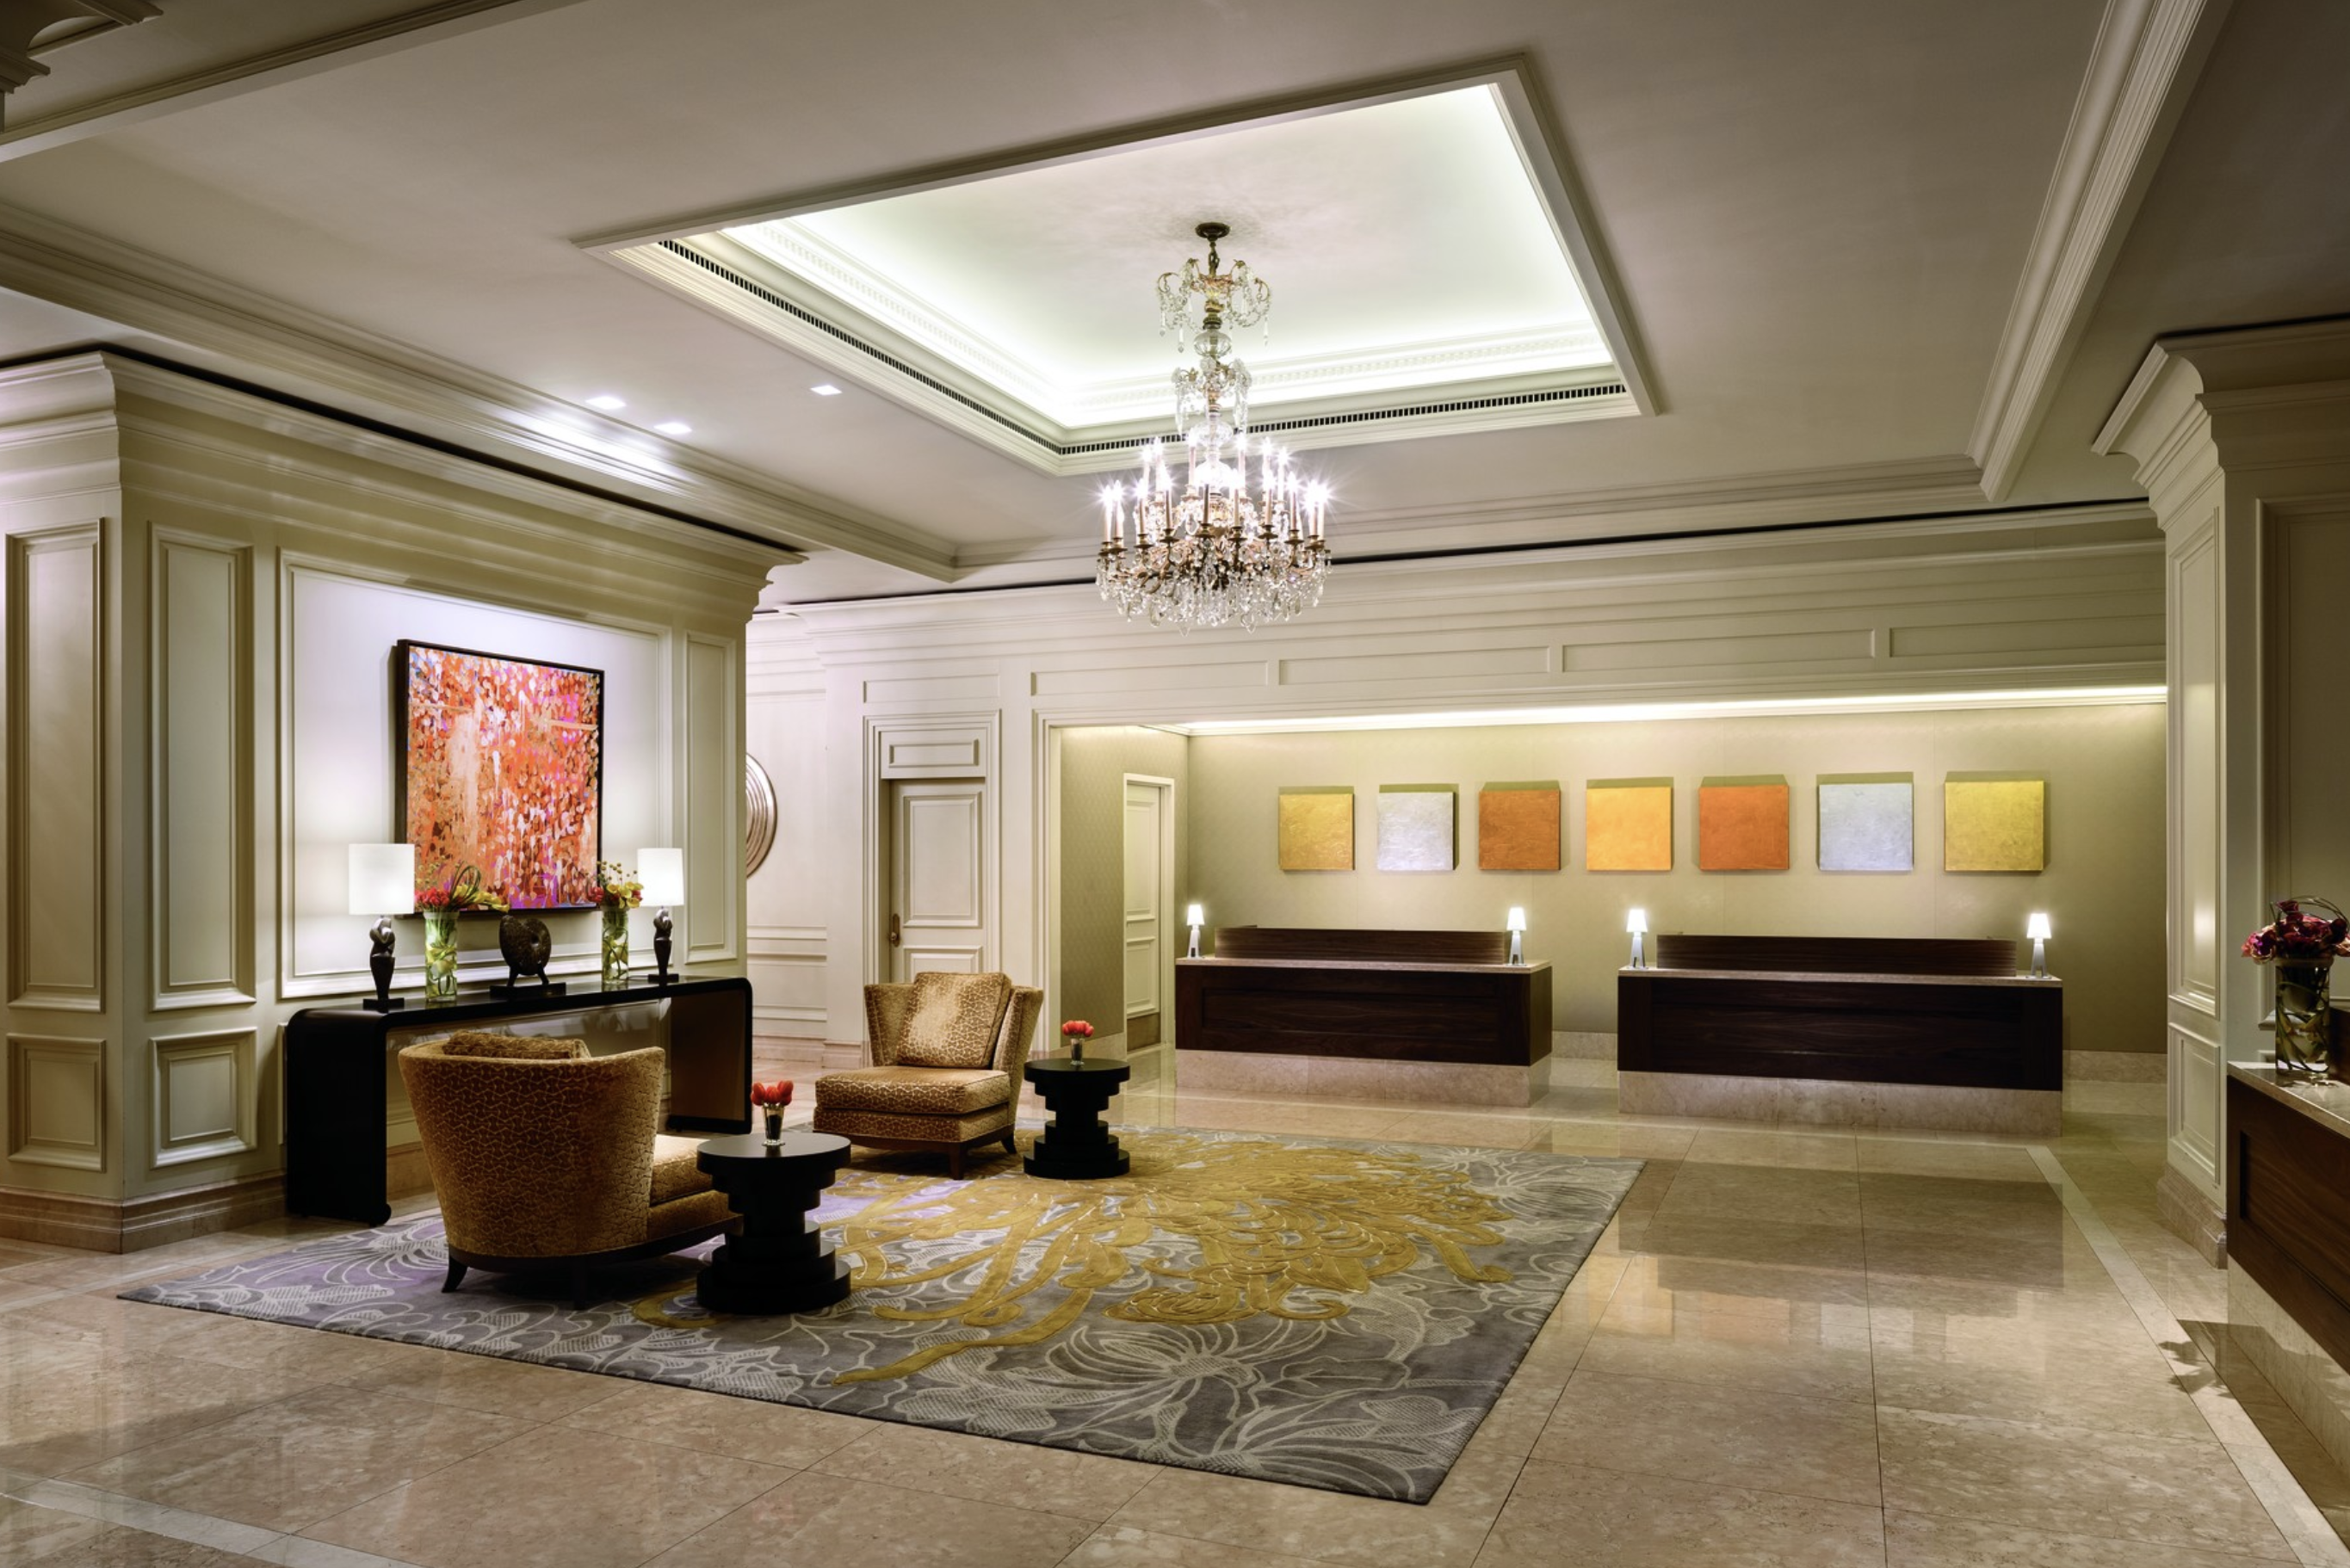 Visit The Ritz-Carlton Pentagon City - Arlington, Virginia